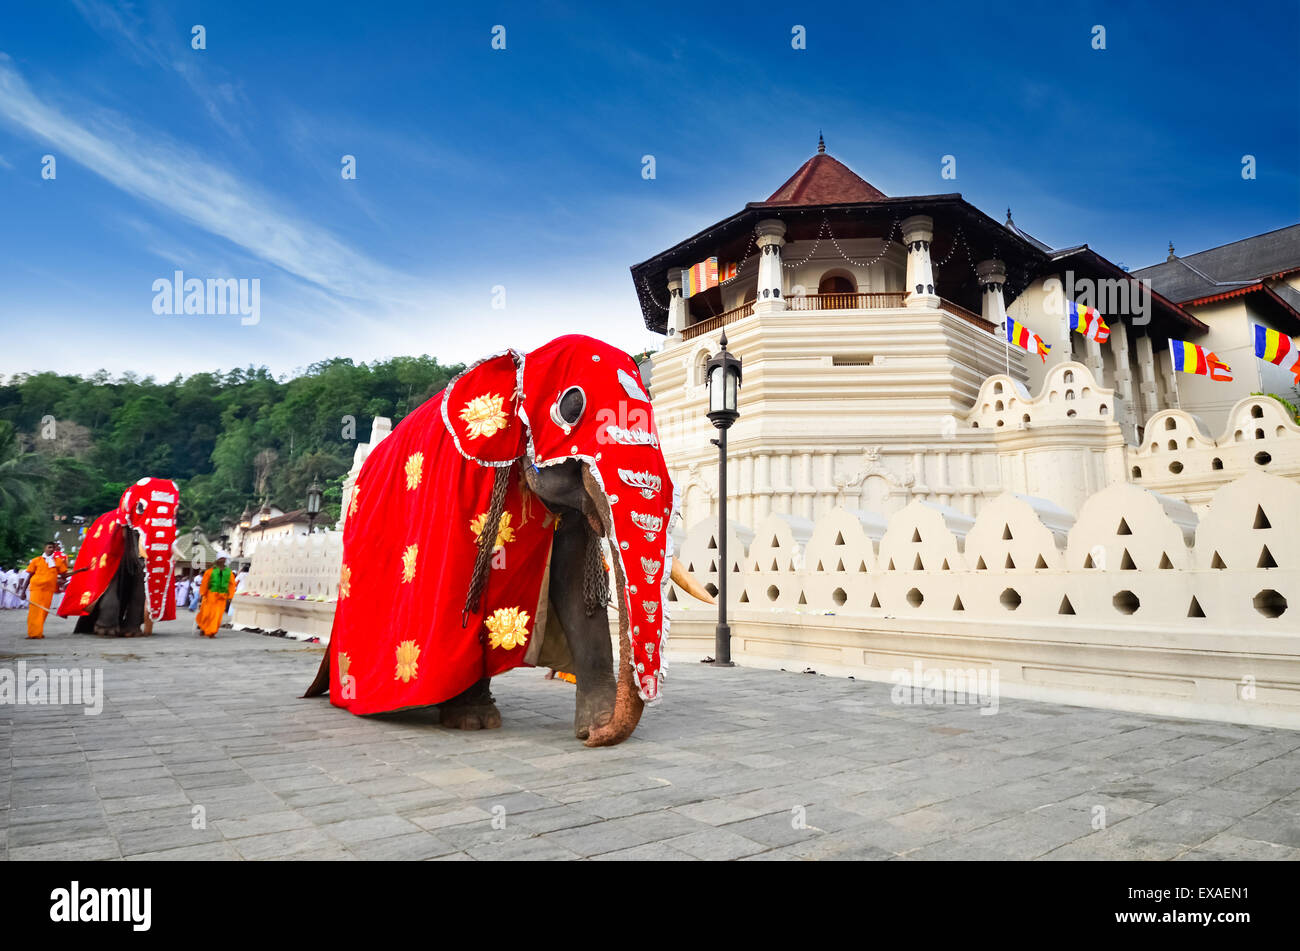 Temple of the tooth of Buddha, Kandy, SriLanka - Stock Image